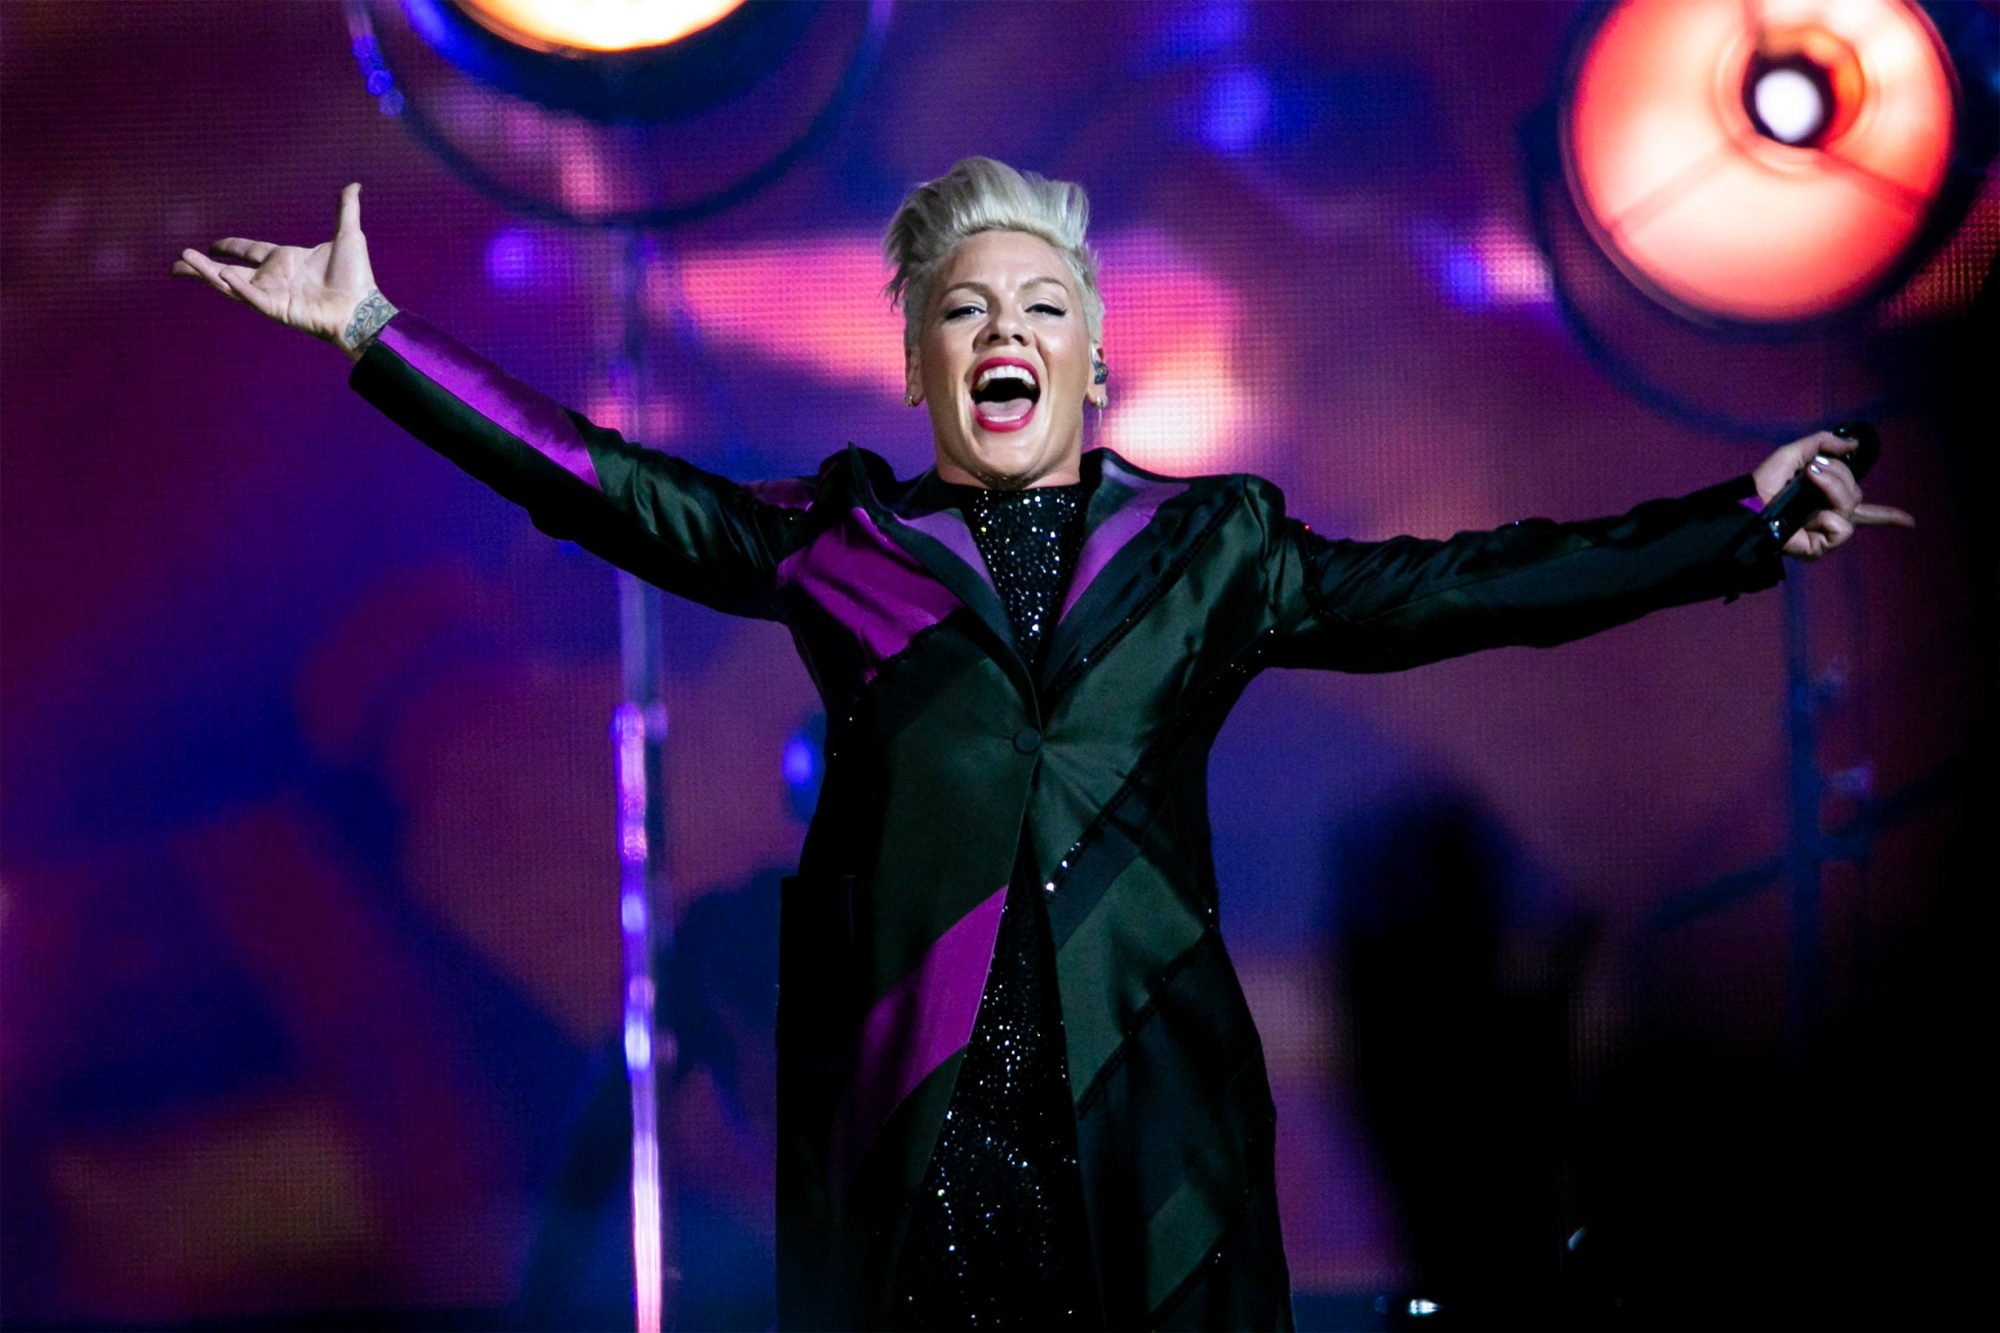 CARDIFF, WALES - JUNE 20: (EDITORIAL USE ONLY) P!nk performs on stage at Principality Stadium on June 20, 2019 in Cardiff, Wales. (Photo by Mike Lewis Photography/Redferns)